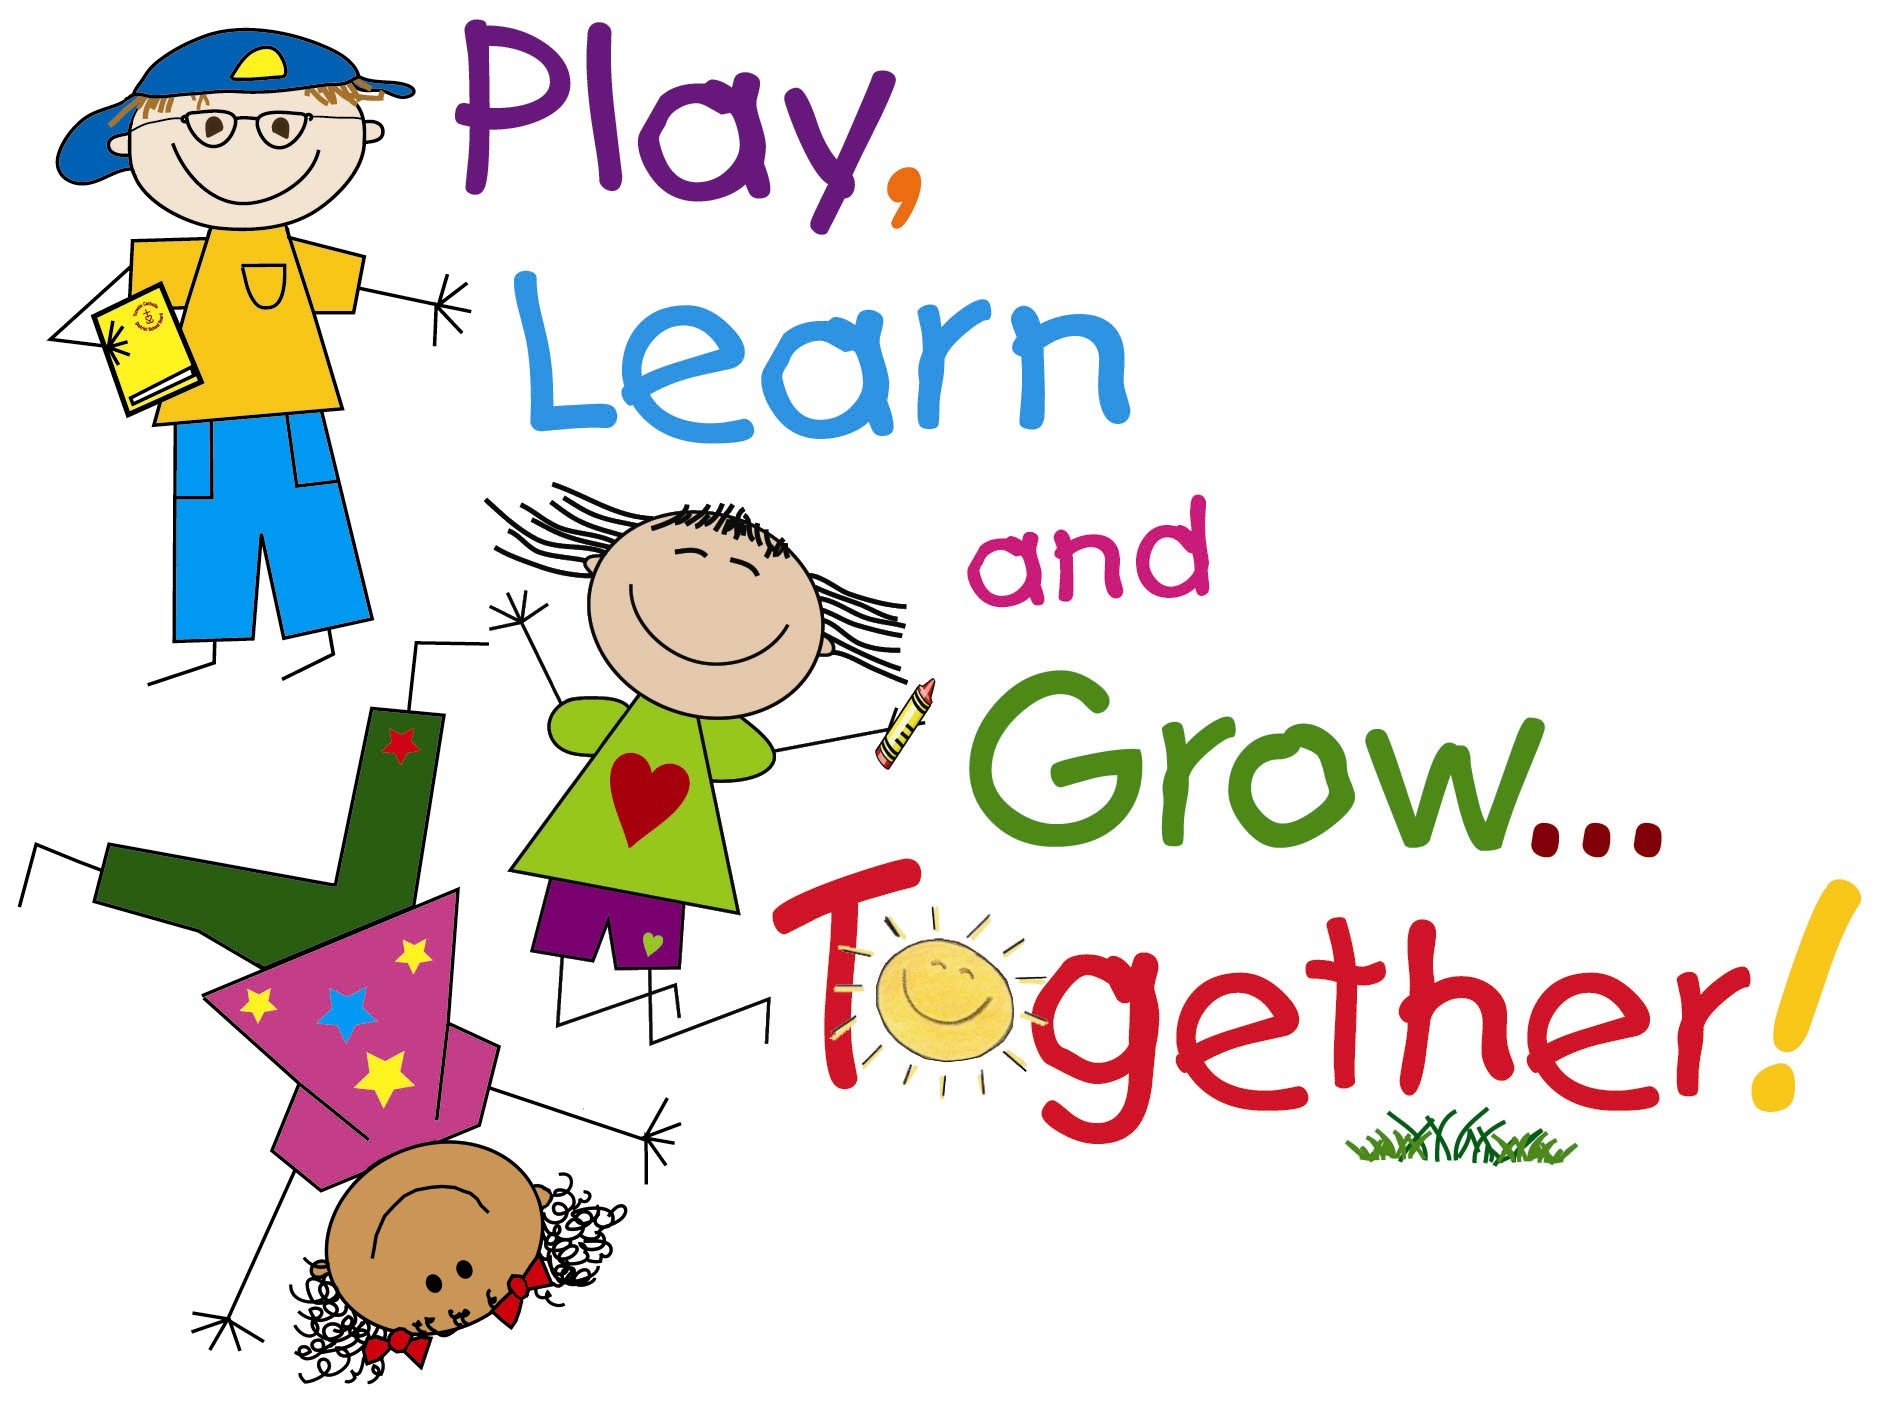 Worksheet Kindergarten 1 k1 classrooms playlearnparent recently a friend asked me great question about kindergarten1st grade known as k1s his daughter is in kindergarten and her school is